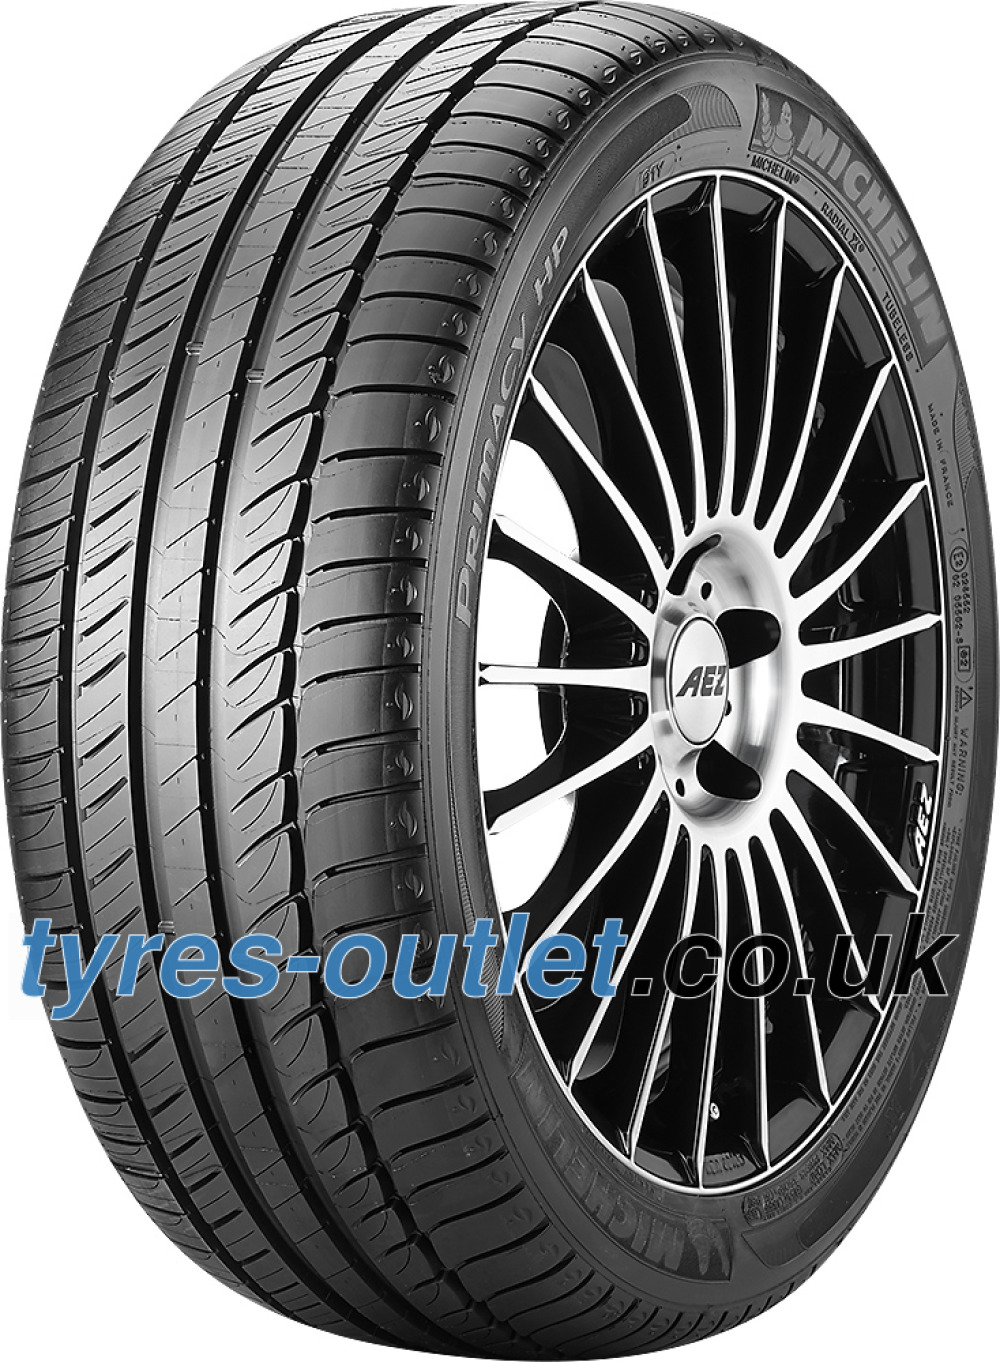 Michelin Primacy HP ( 245/40 R17 91Y MO, GRNX, with rim protection ridge (FSL) )